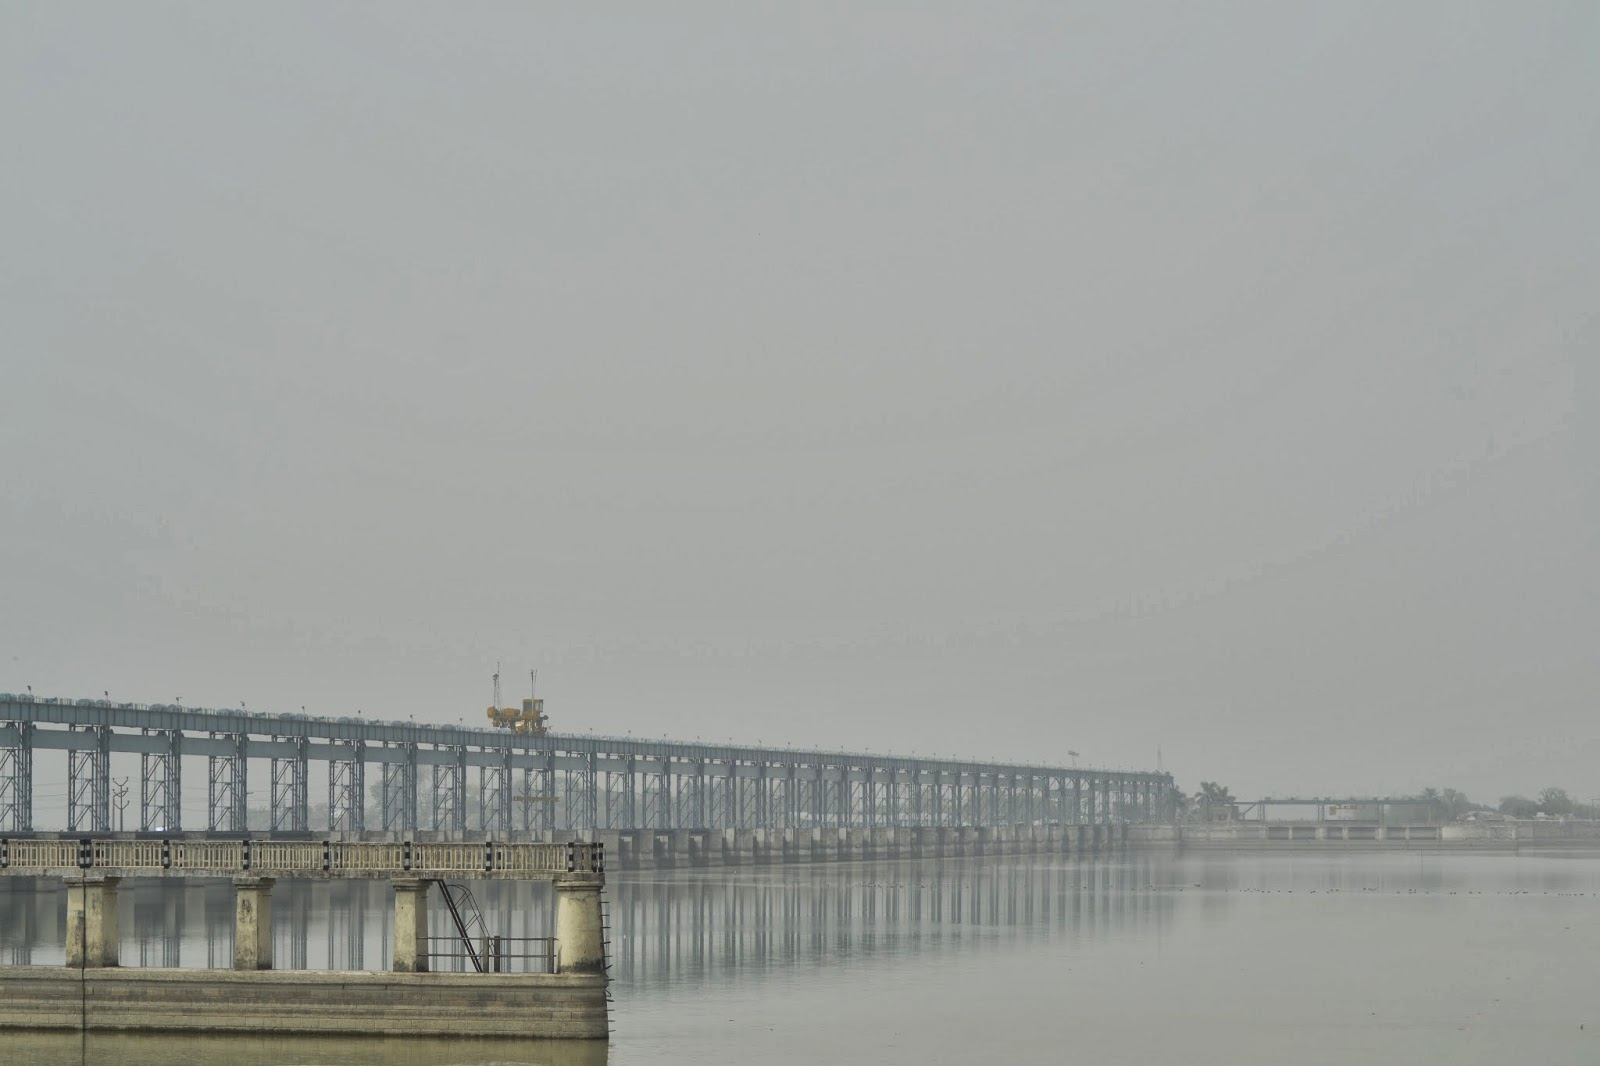 An engineering marvel - Koshi barrage